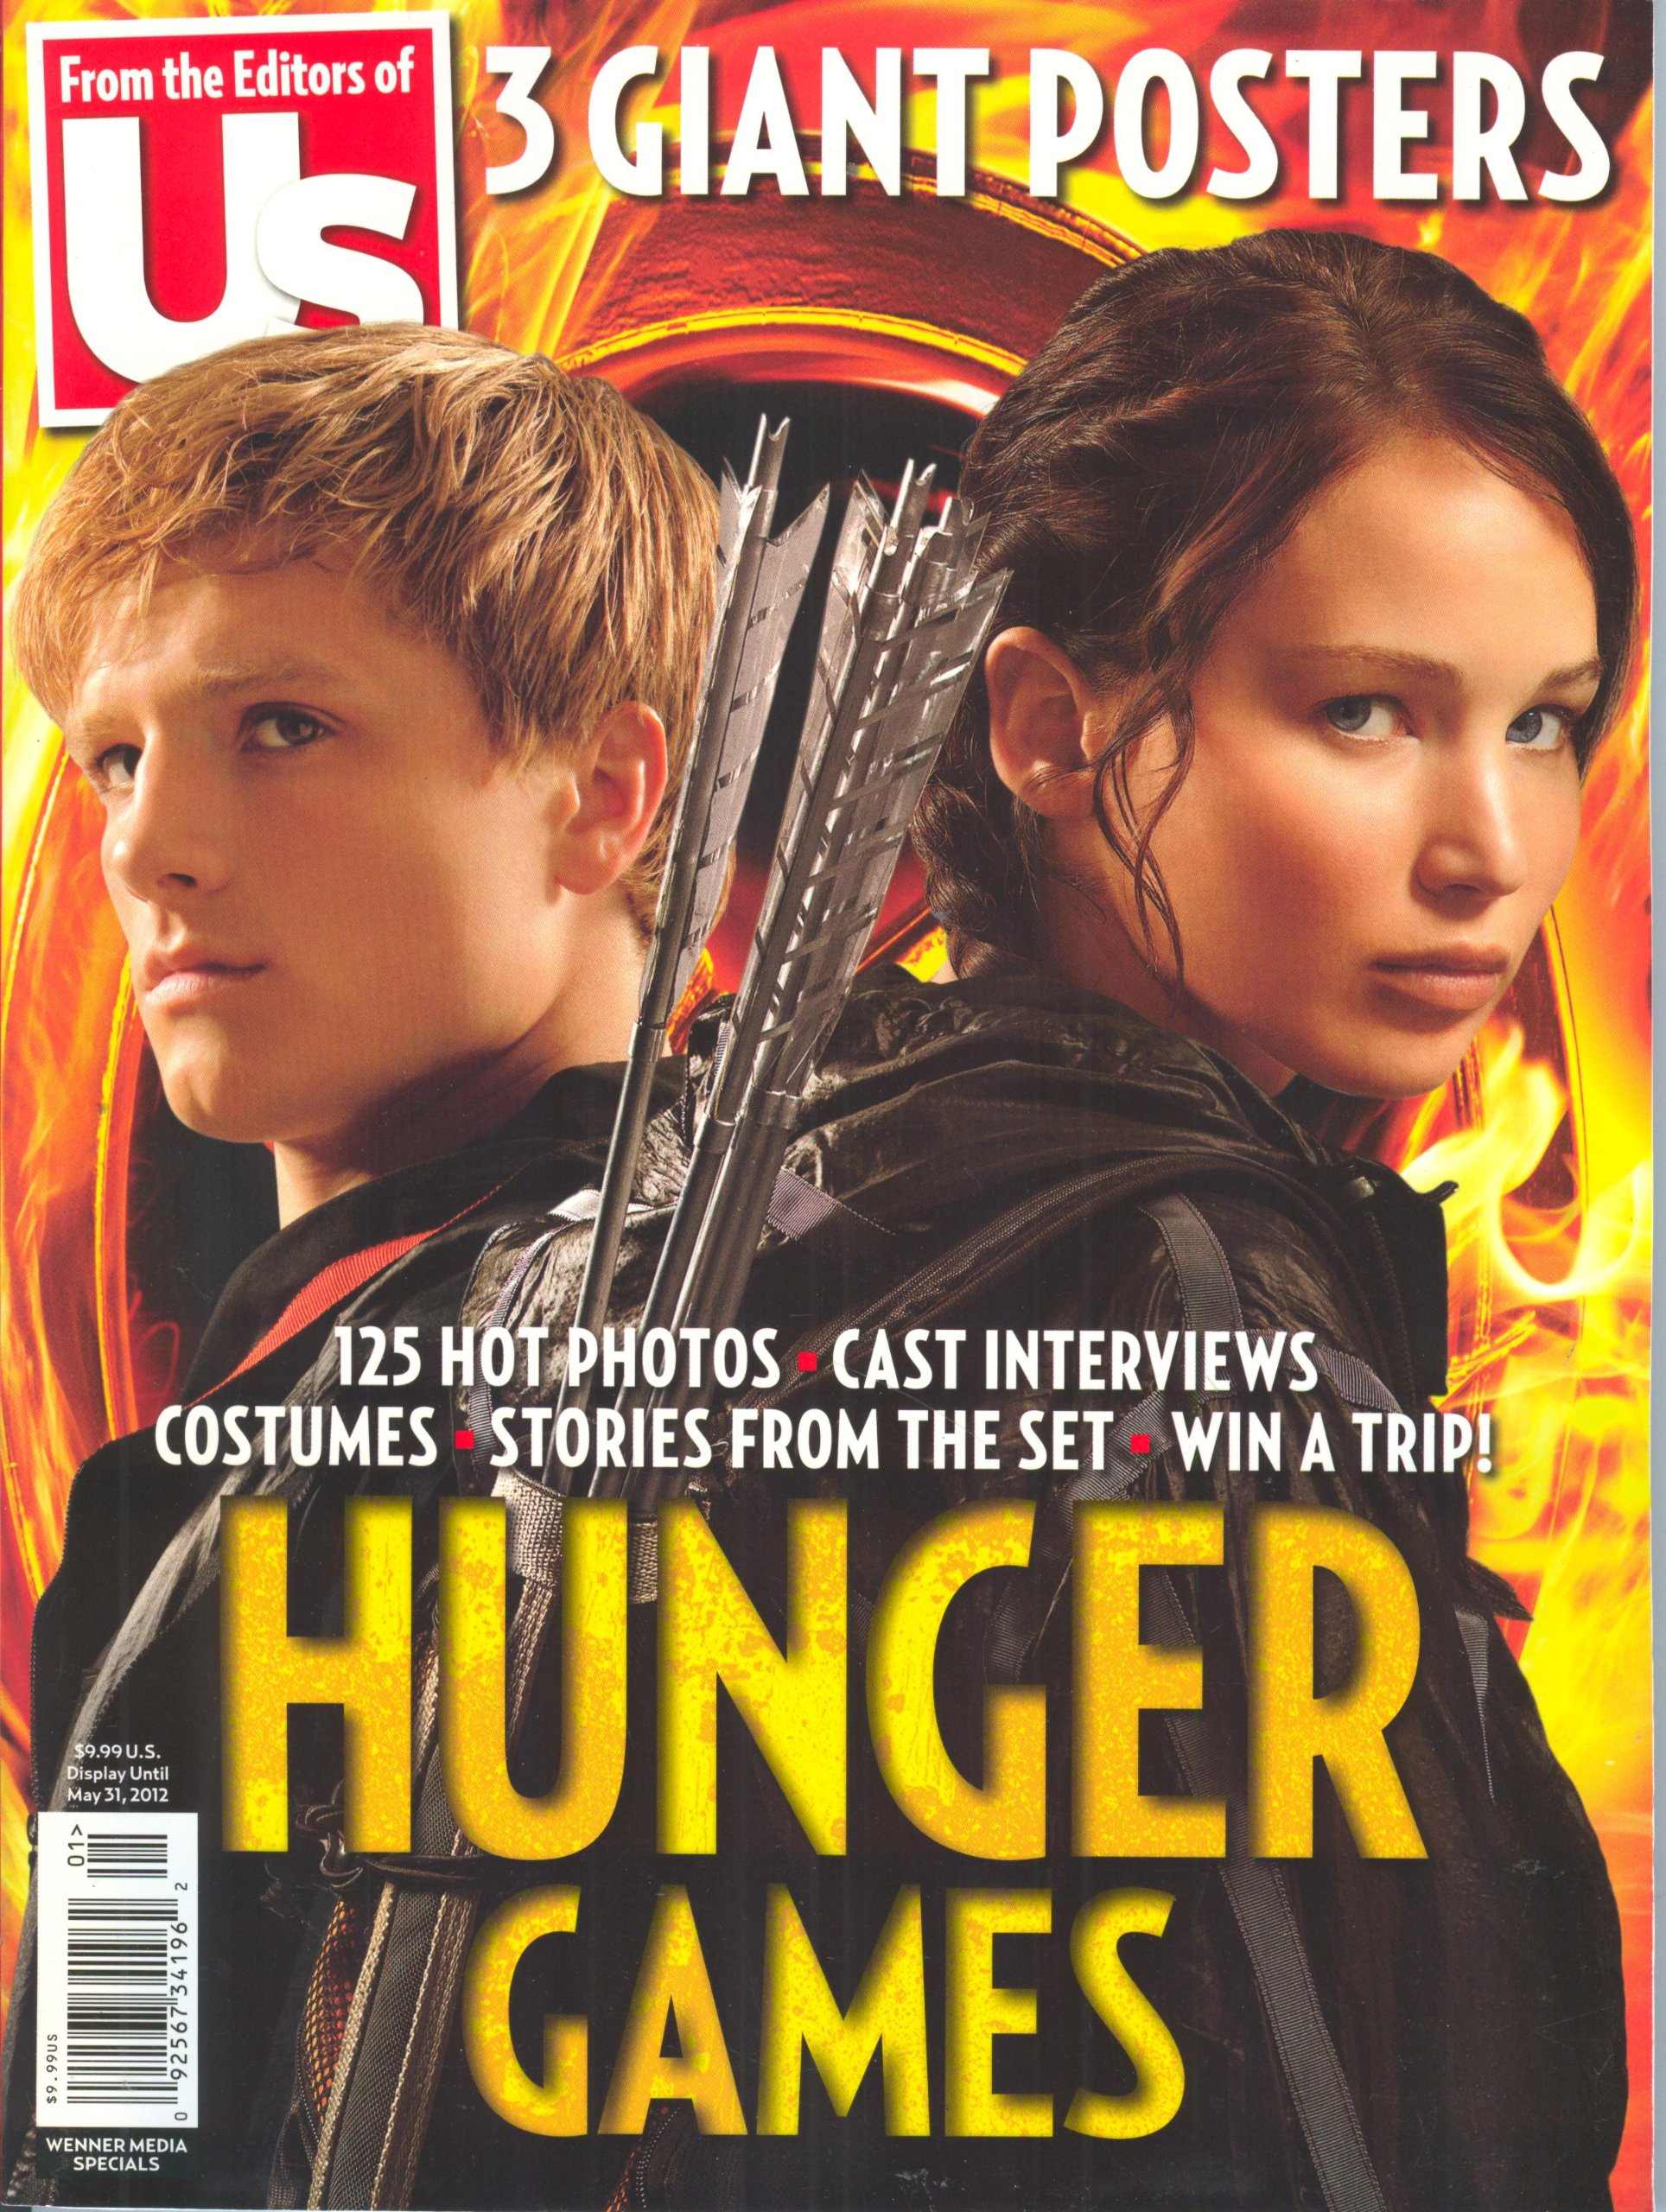 Image for Us Magazine, Special The Hunger Games 2012 Collector's Edition. 125 Hot Photos, 3 Giant Posters